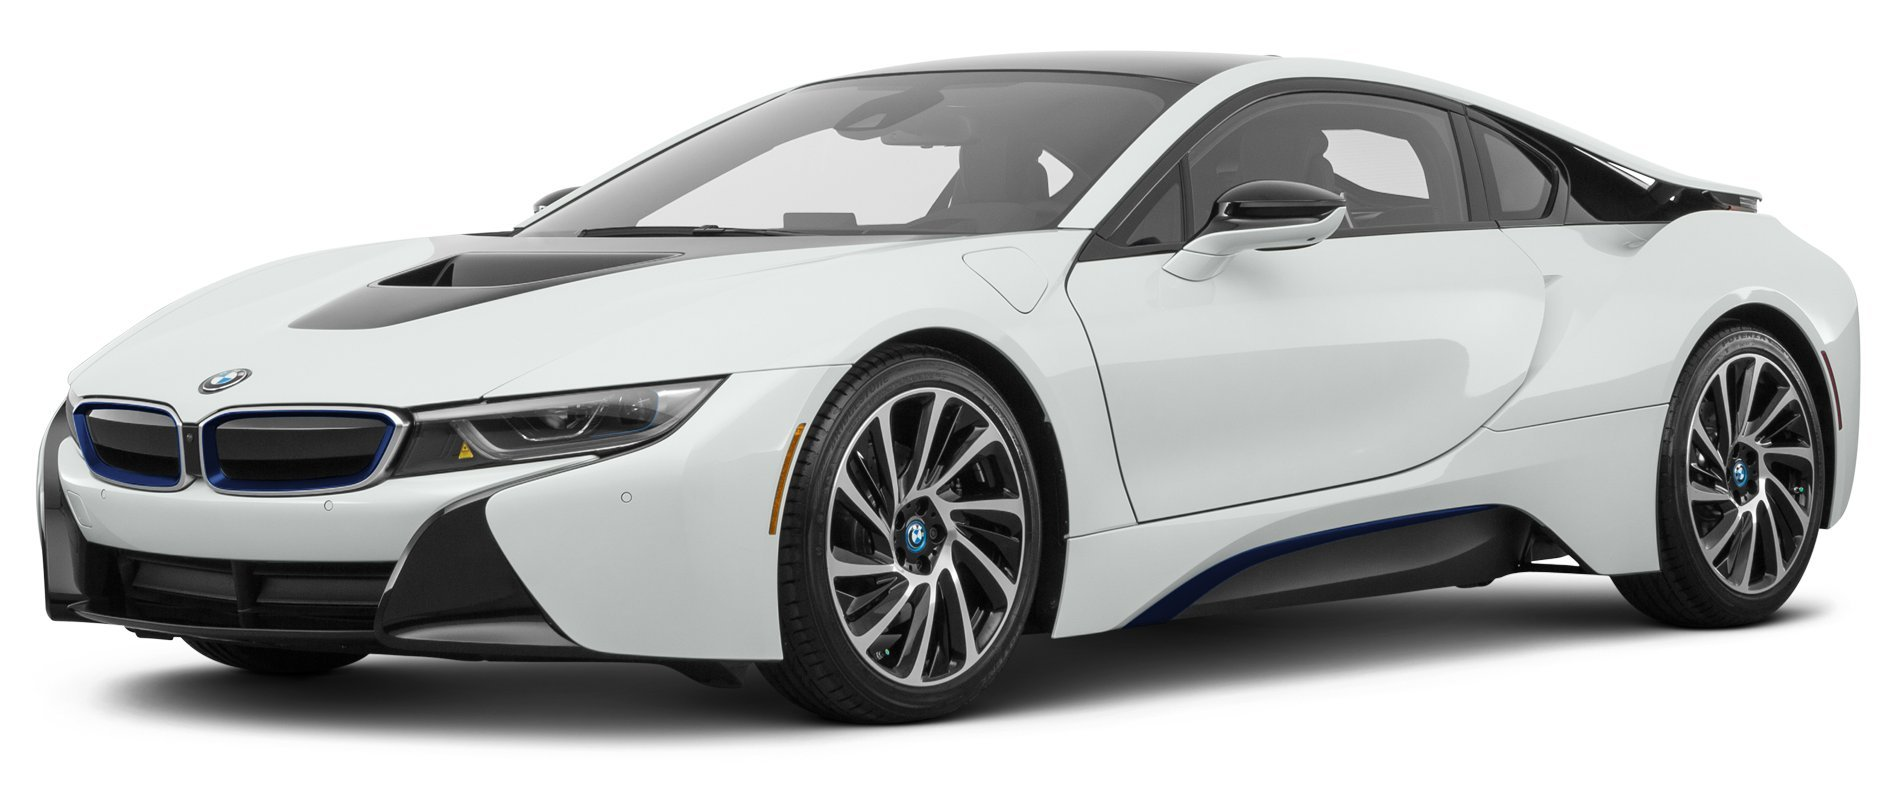 Bmw I8 2010 New Cars Gallery